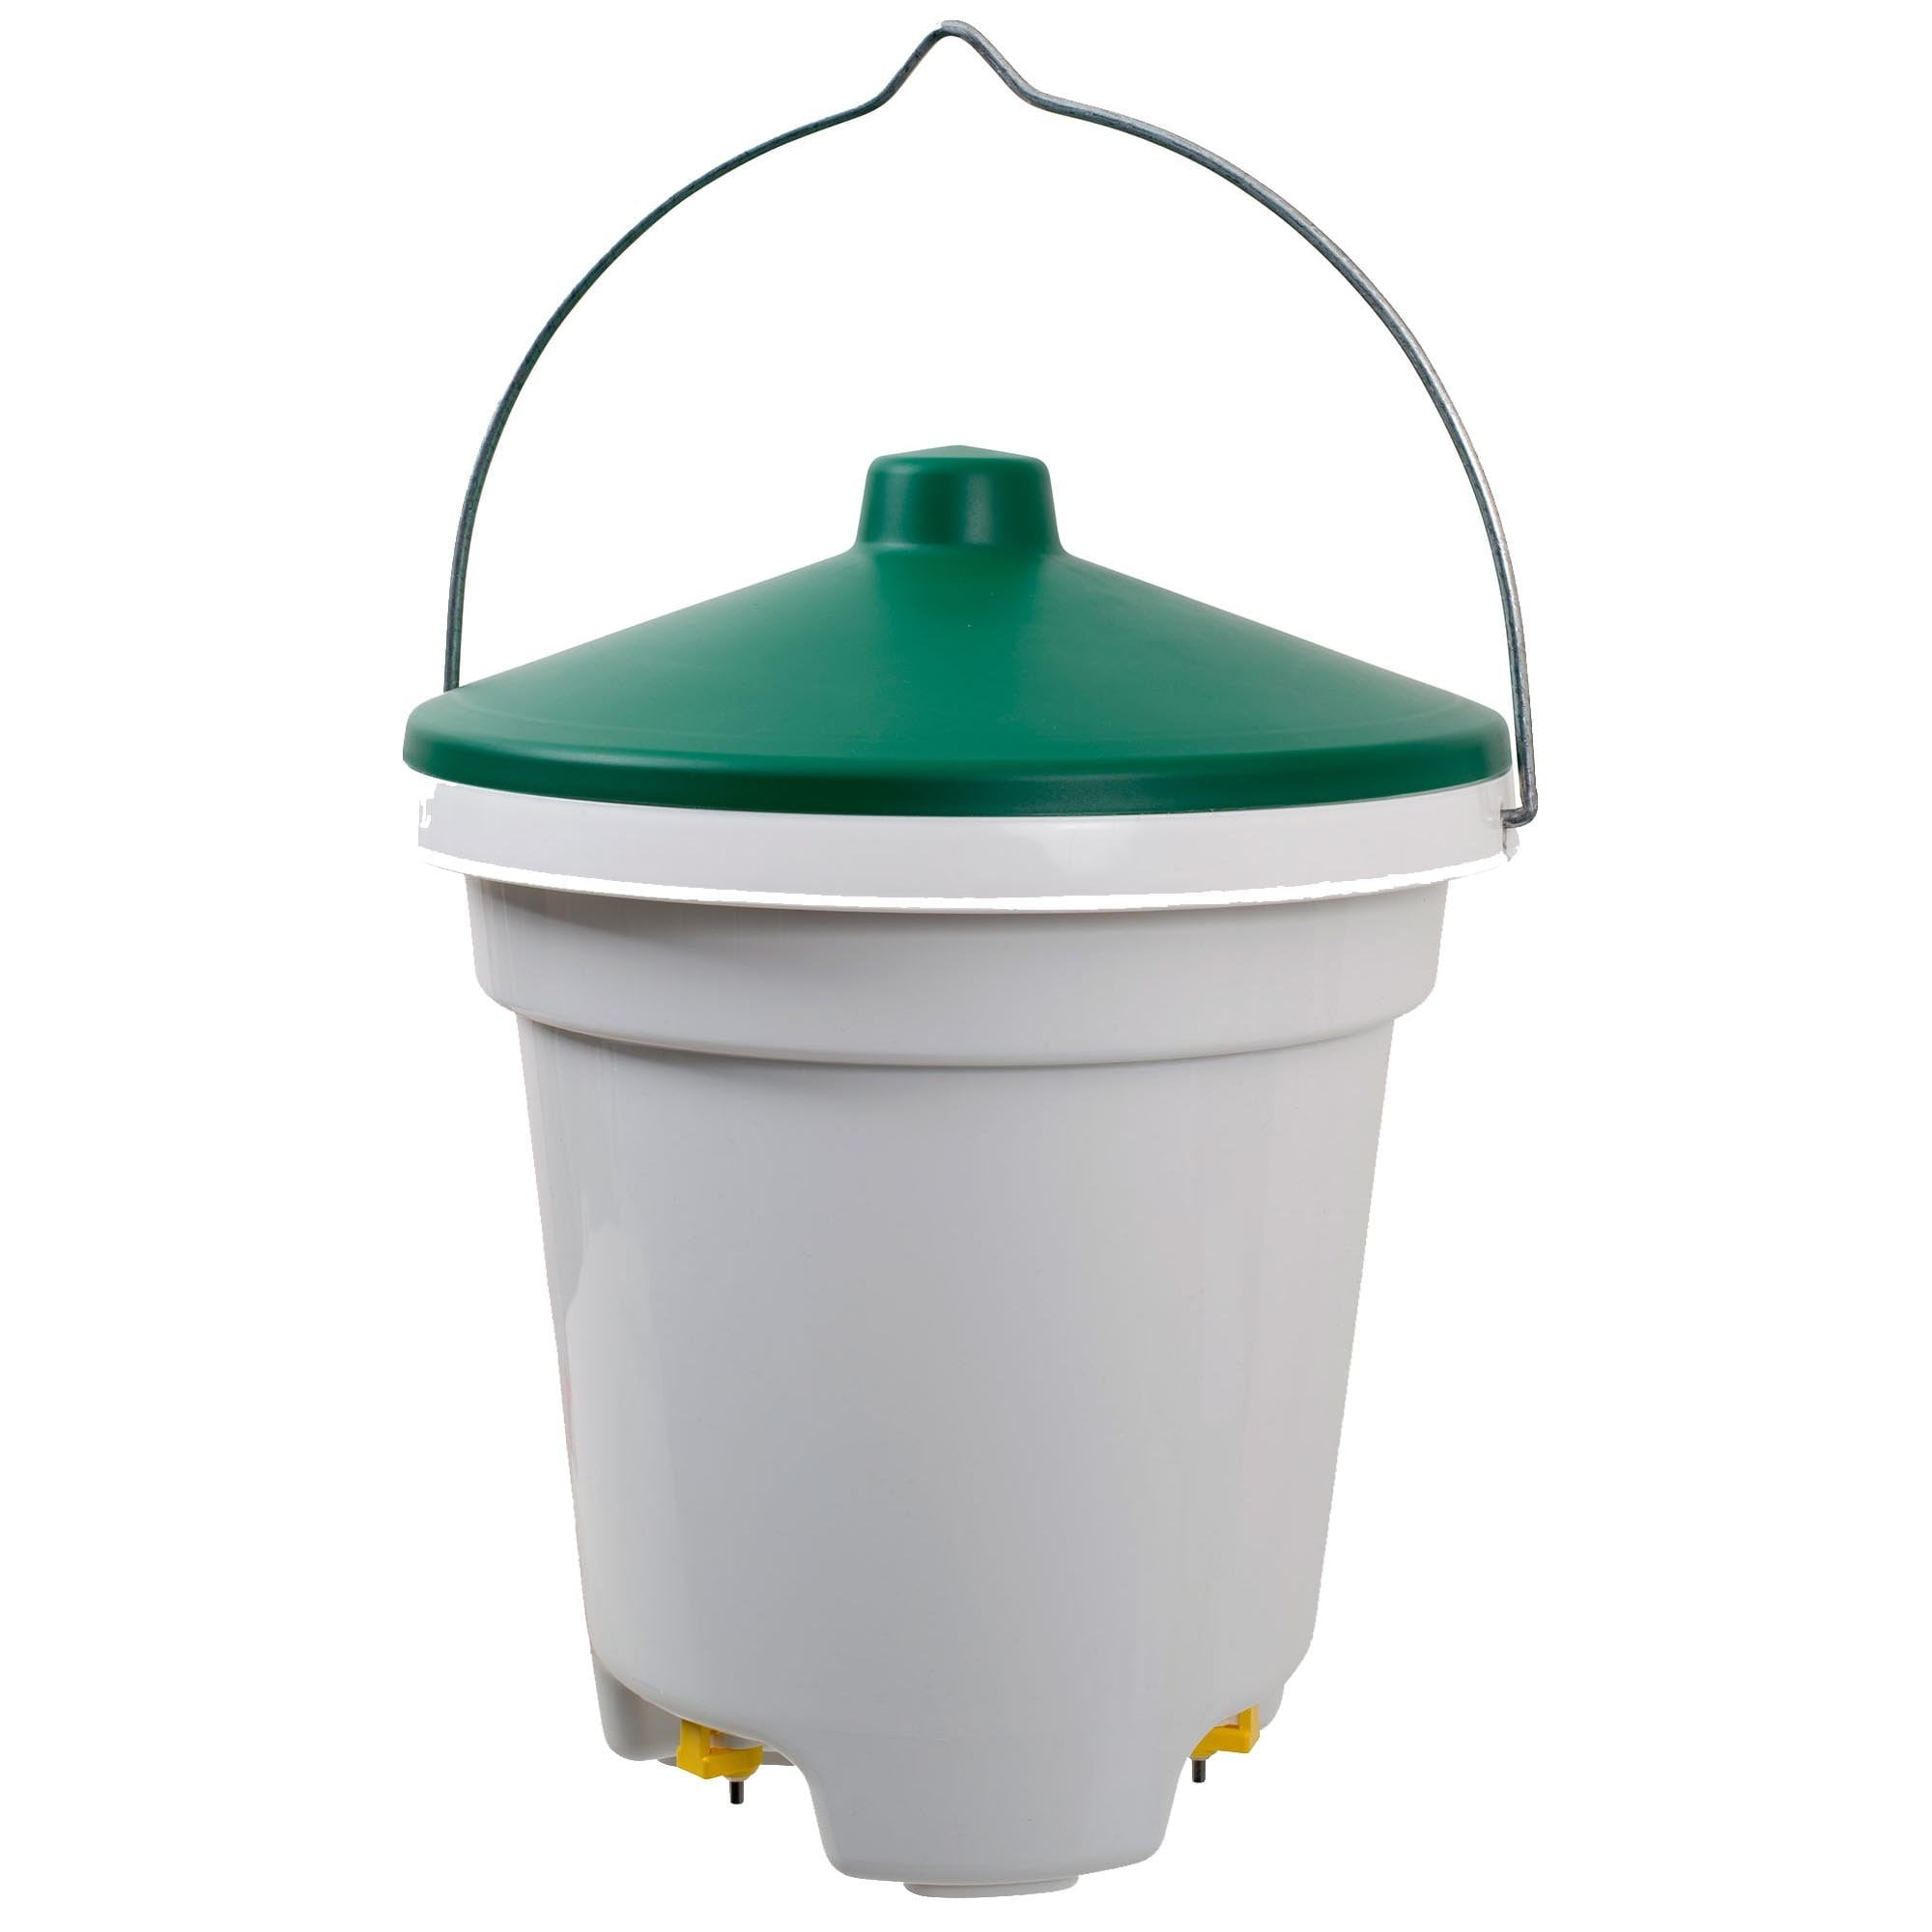 Hanging Waterer | 3 Gallons - Urban-Egg - Poultry Roll Away Nest Boxes, Chicken Feeders, and More